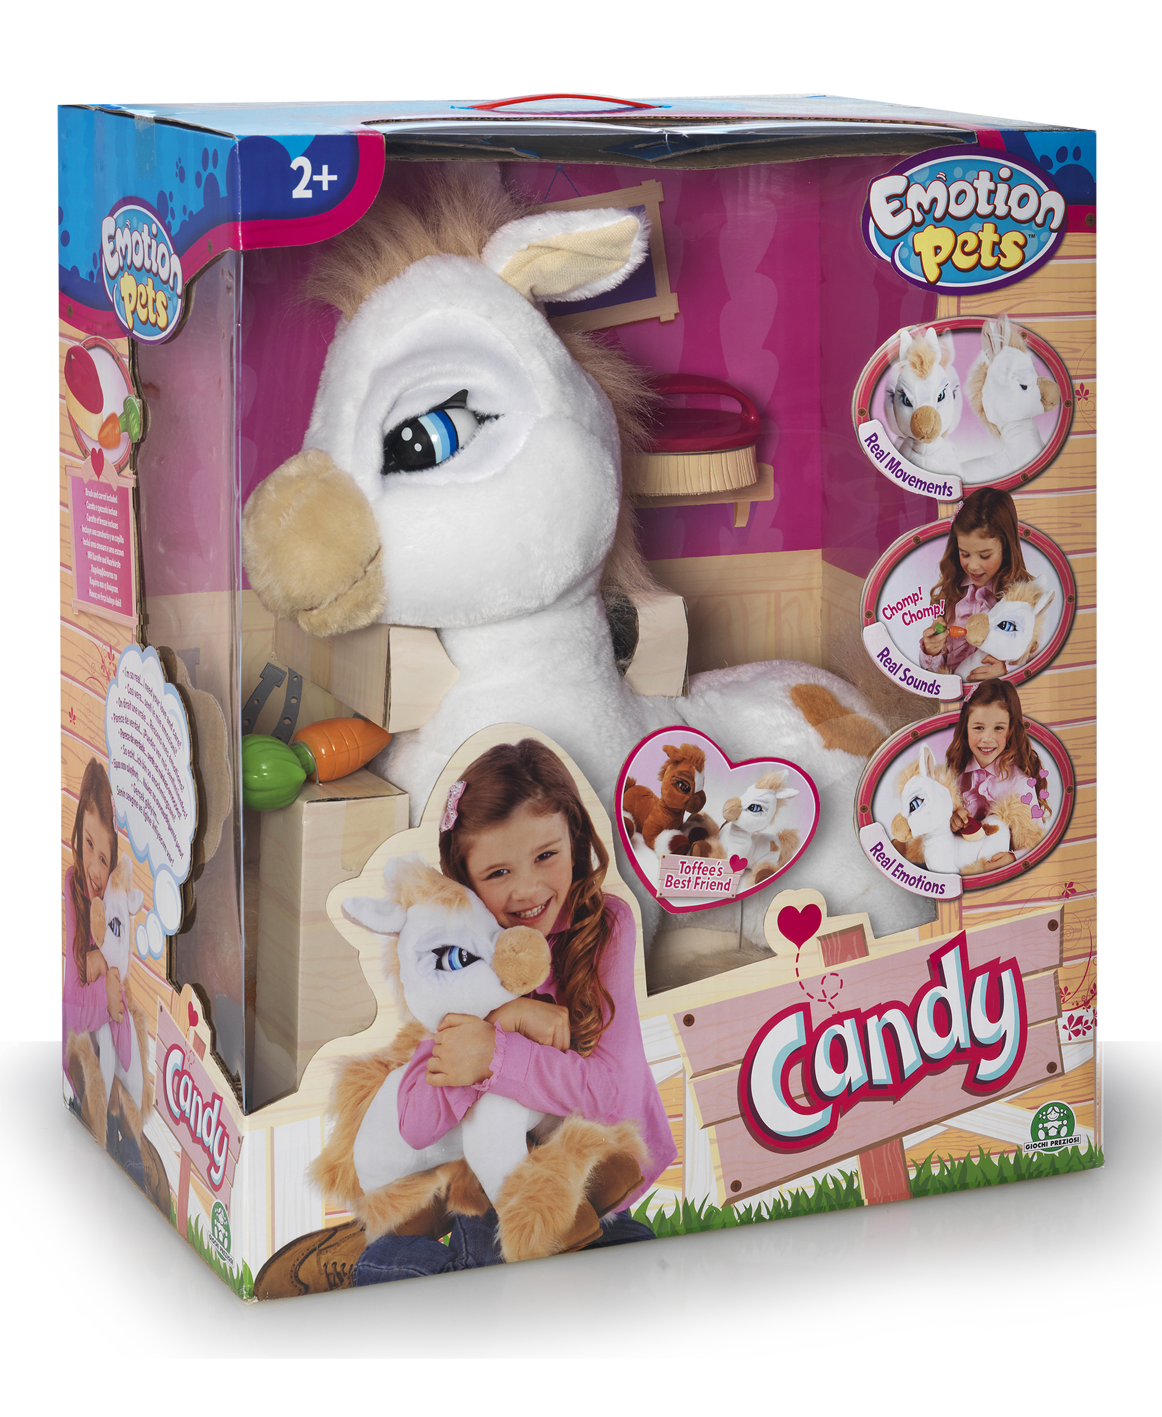 emp60570_candy-package